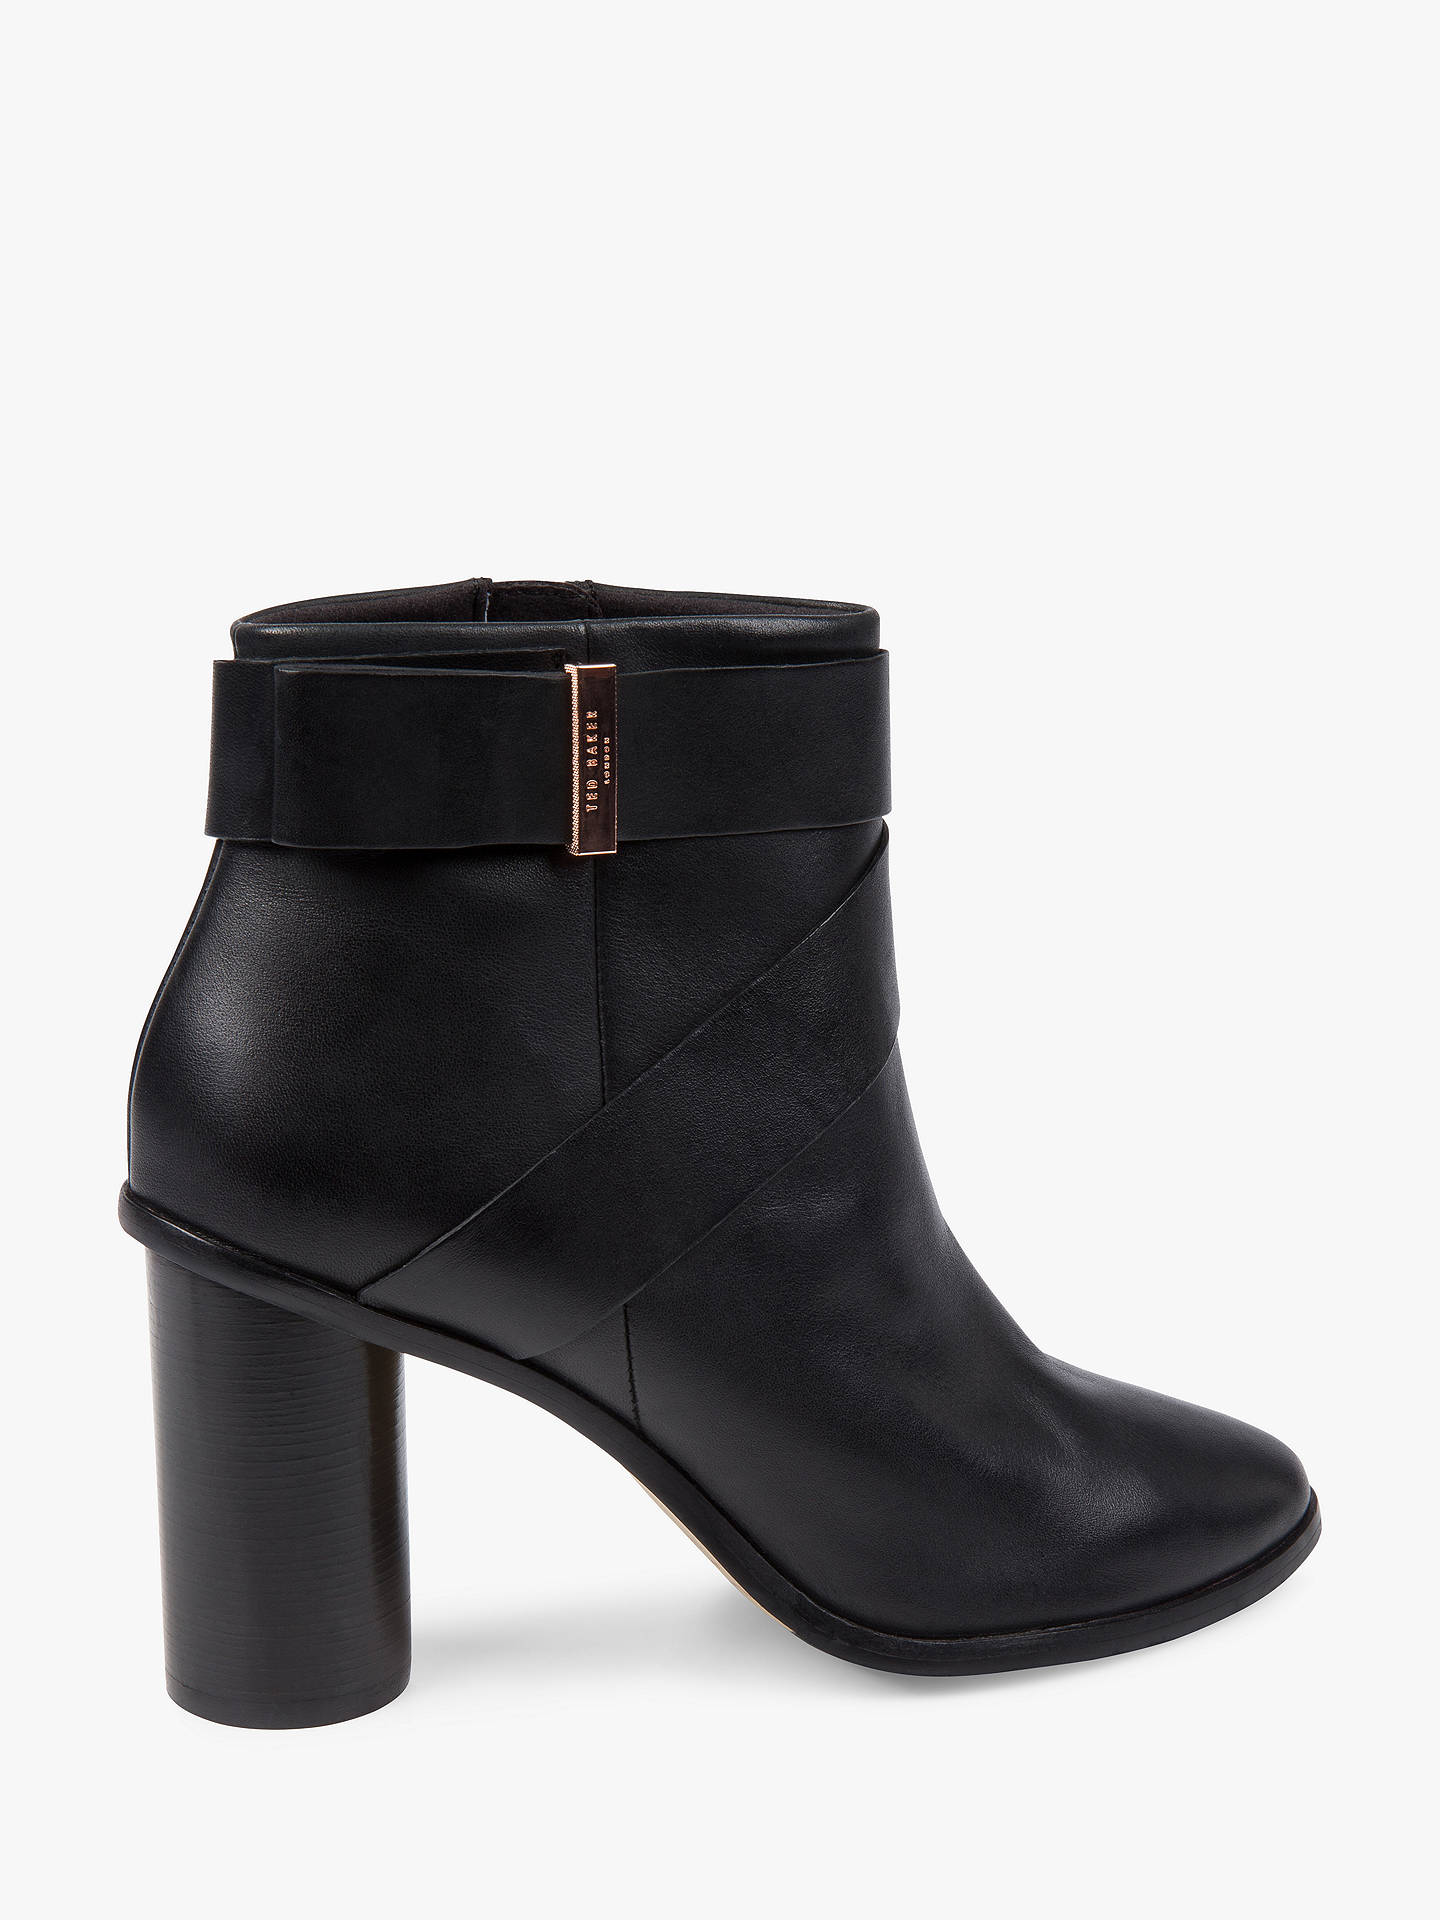 BuyTed Baker Matyna Block Heeled Ankle Boots, Black, 3 Online at johnlewis.com